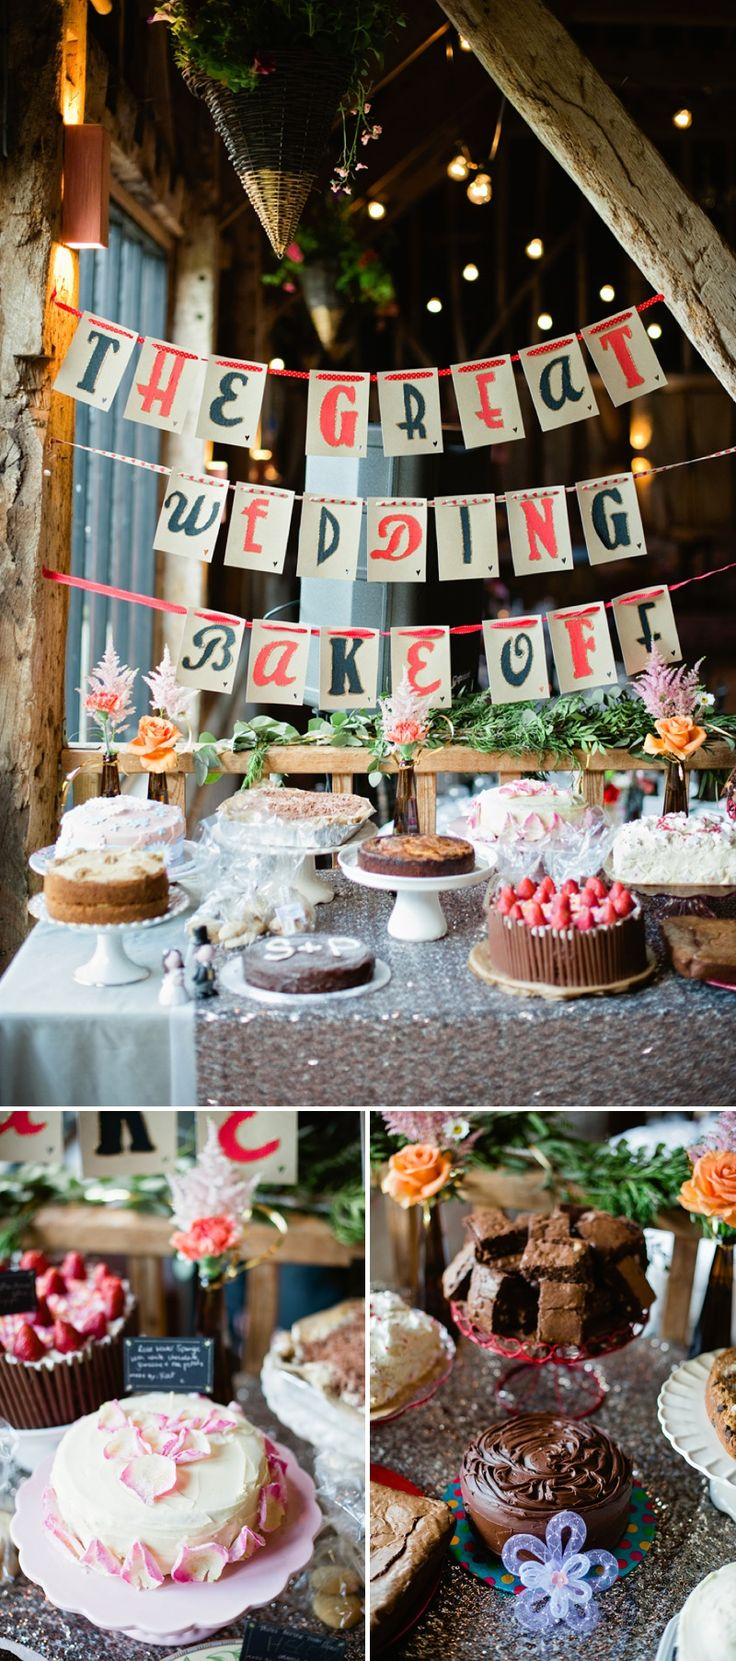 DIY Wedding Dessert Table Cake Competition Bakeoff. I think this is a cute idea! then you don't have to pay for dessert for everyone!